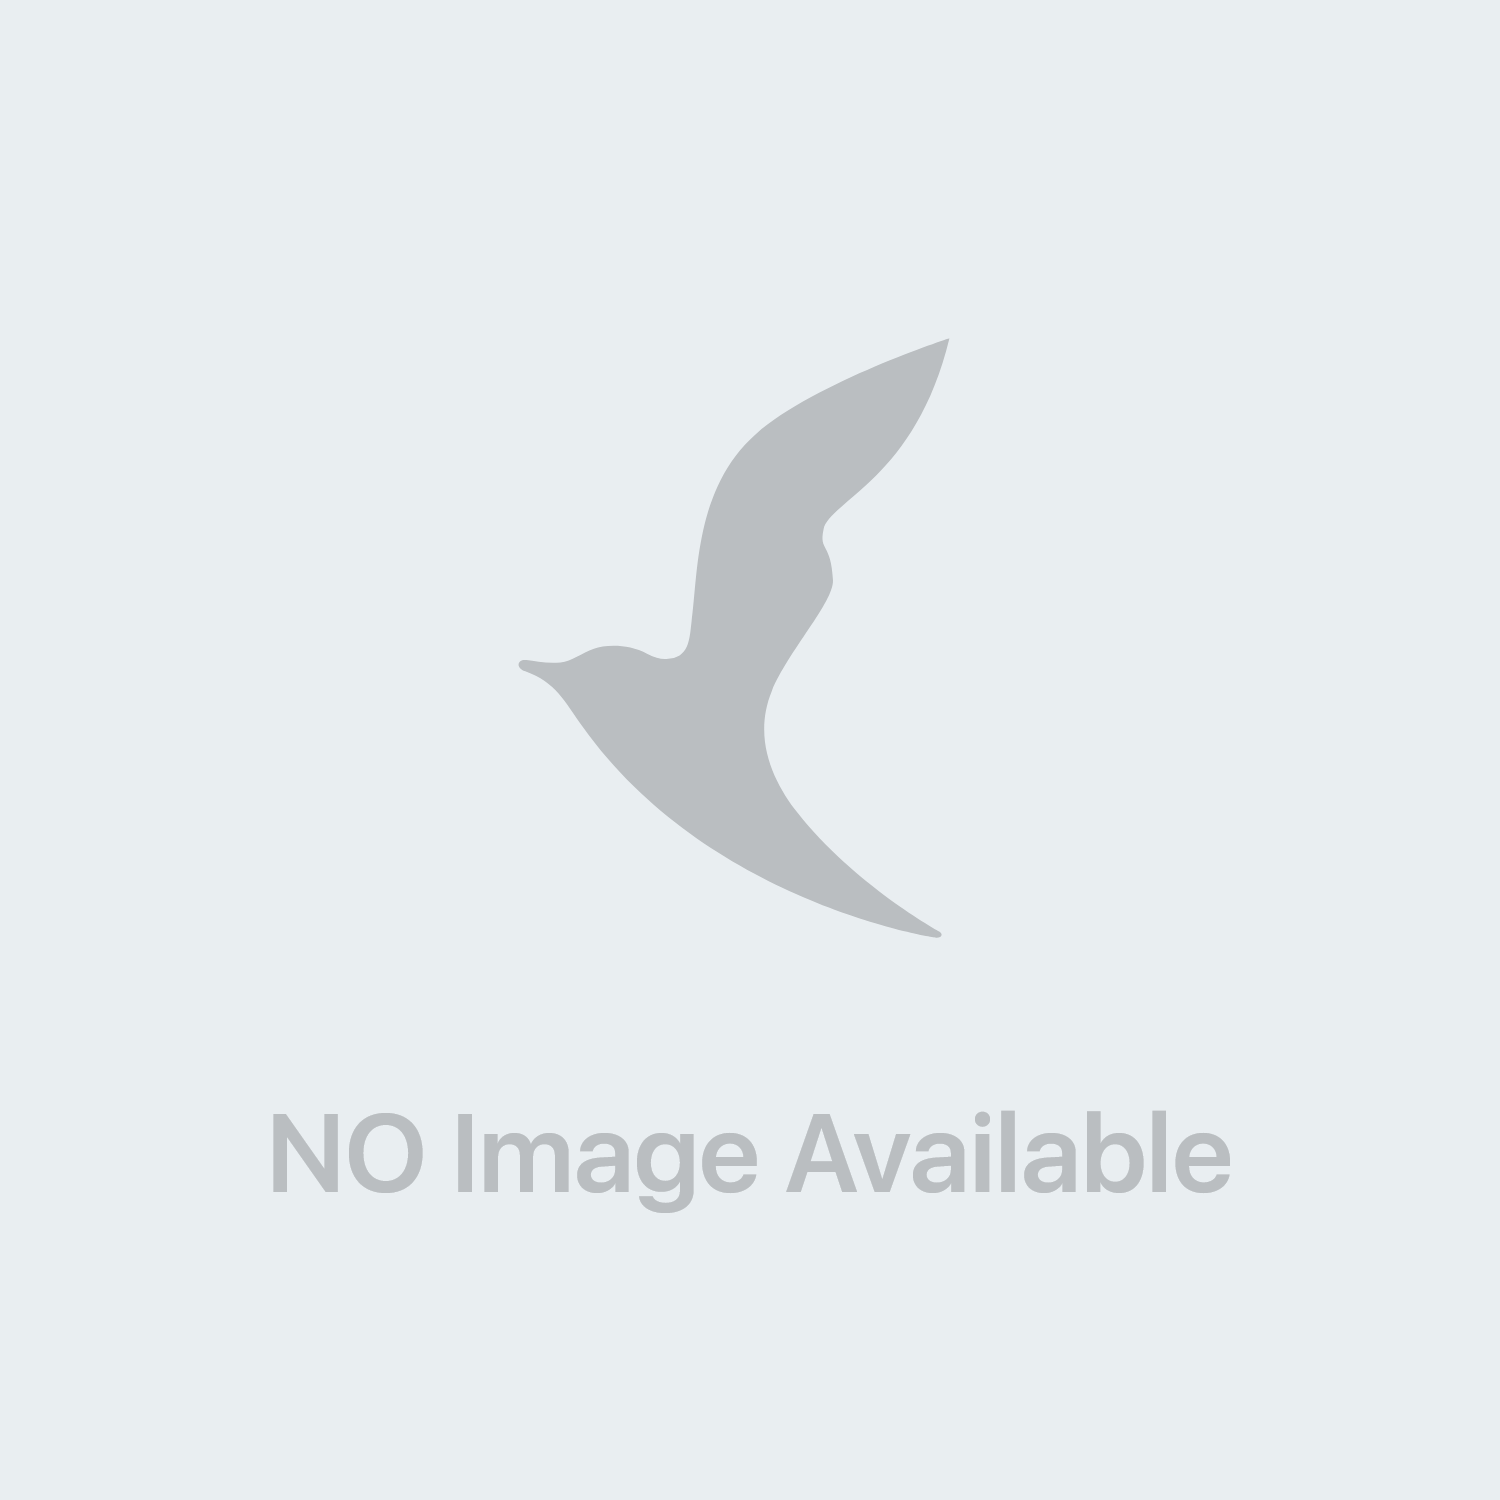 Royal Canine Intense Hairball Mangime Secco Gatti 400 Gr